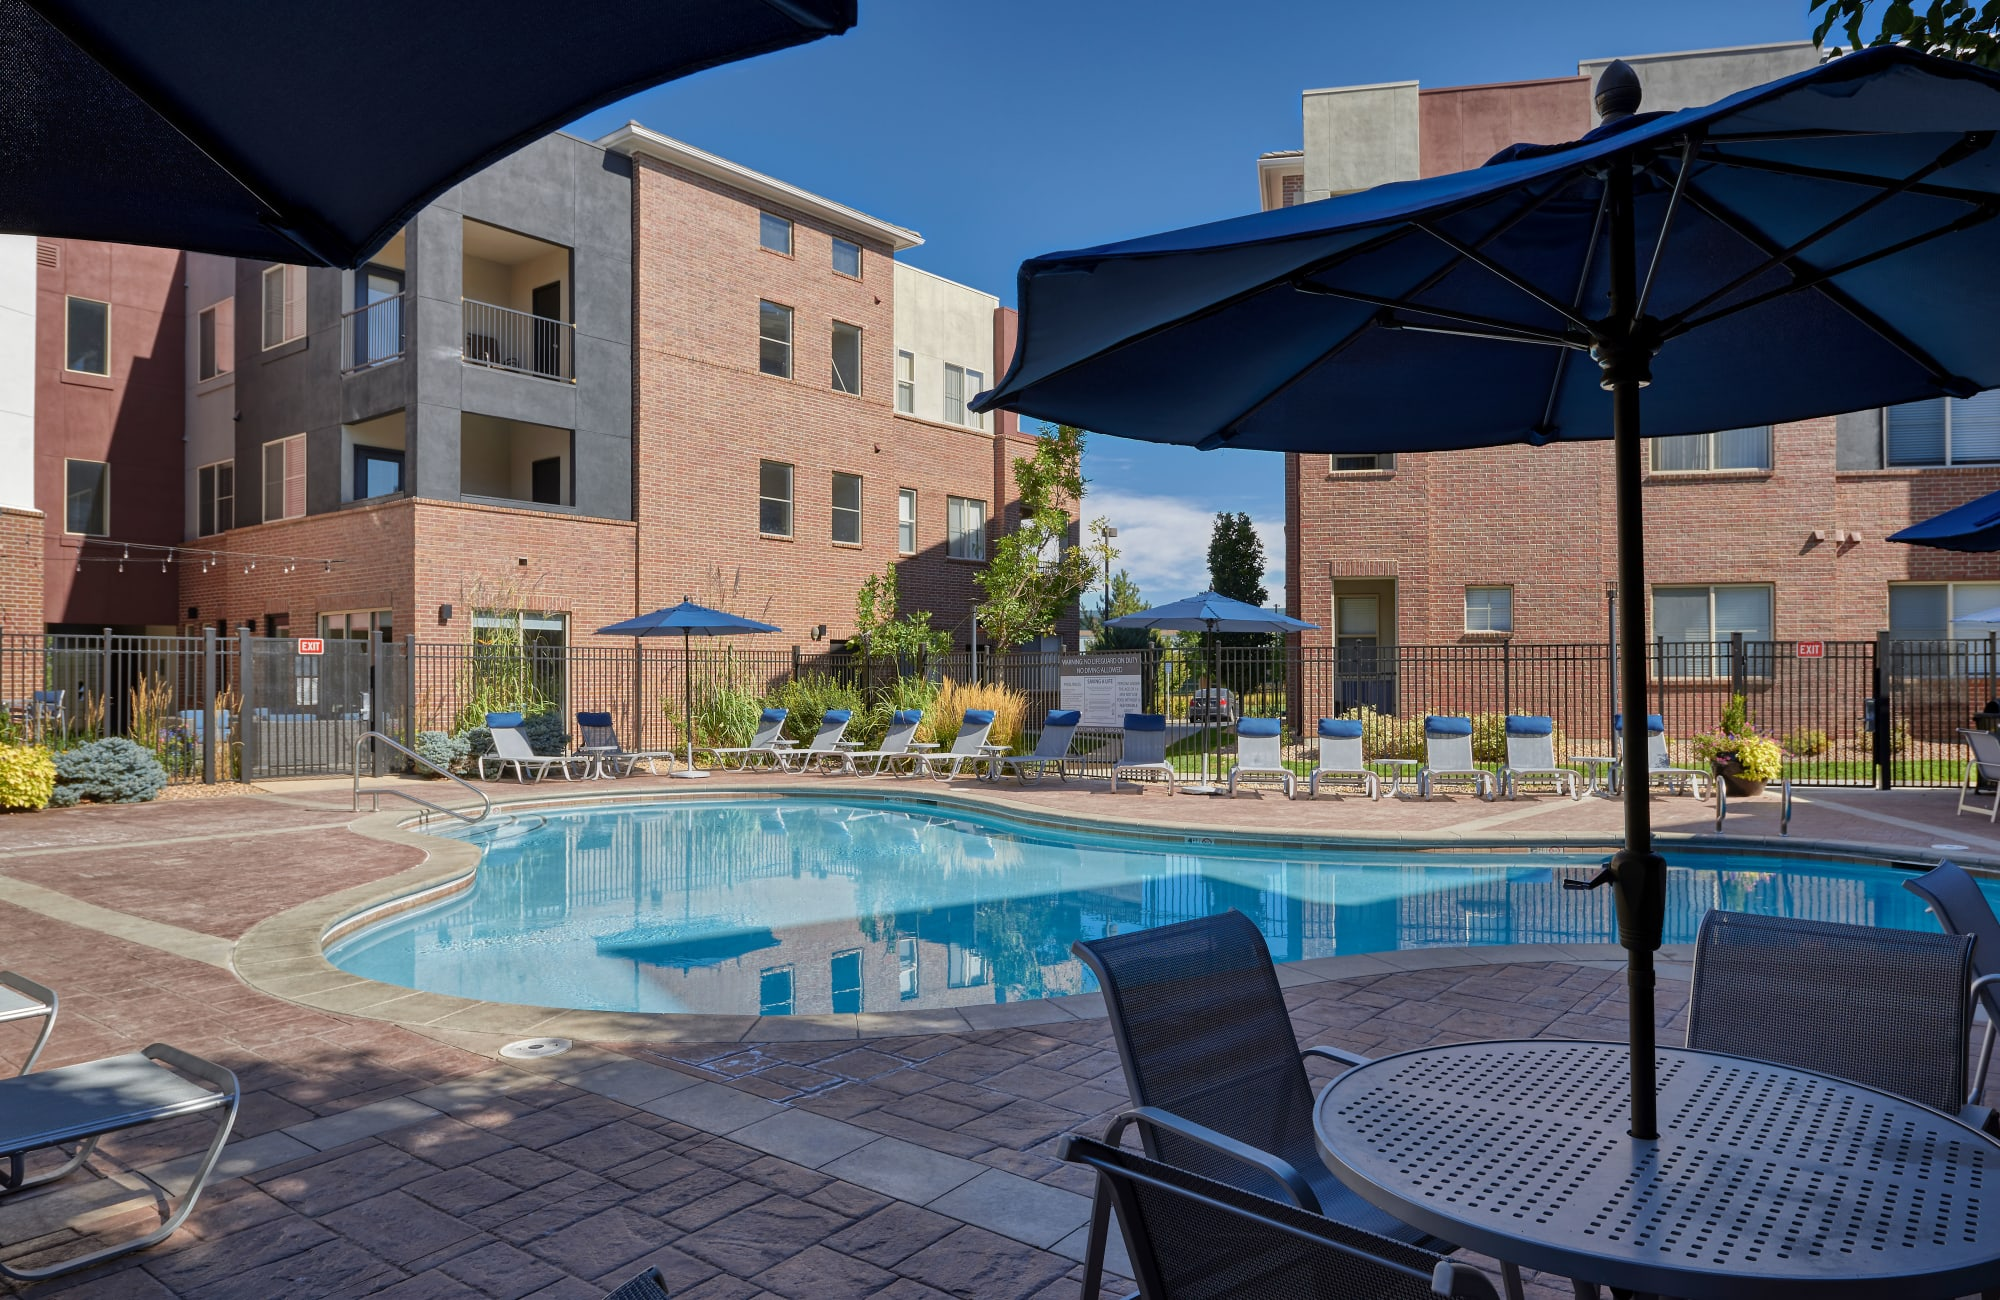 Spa and Pool with lounges and umbrellas in Englewood, CO